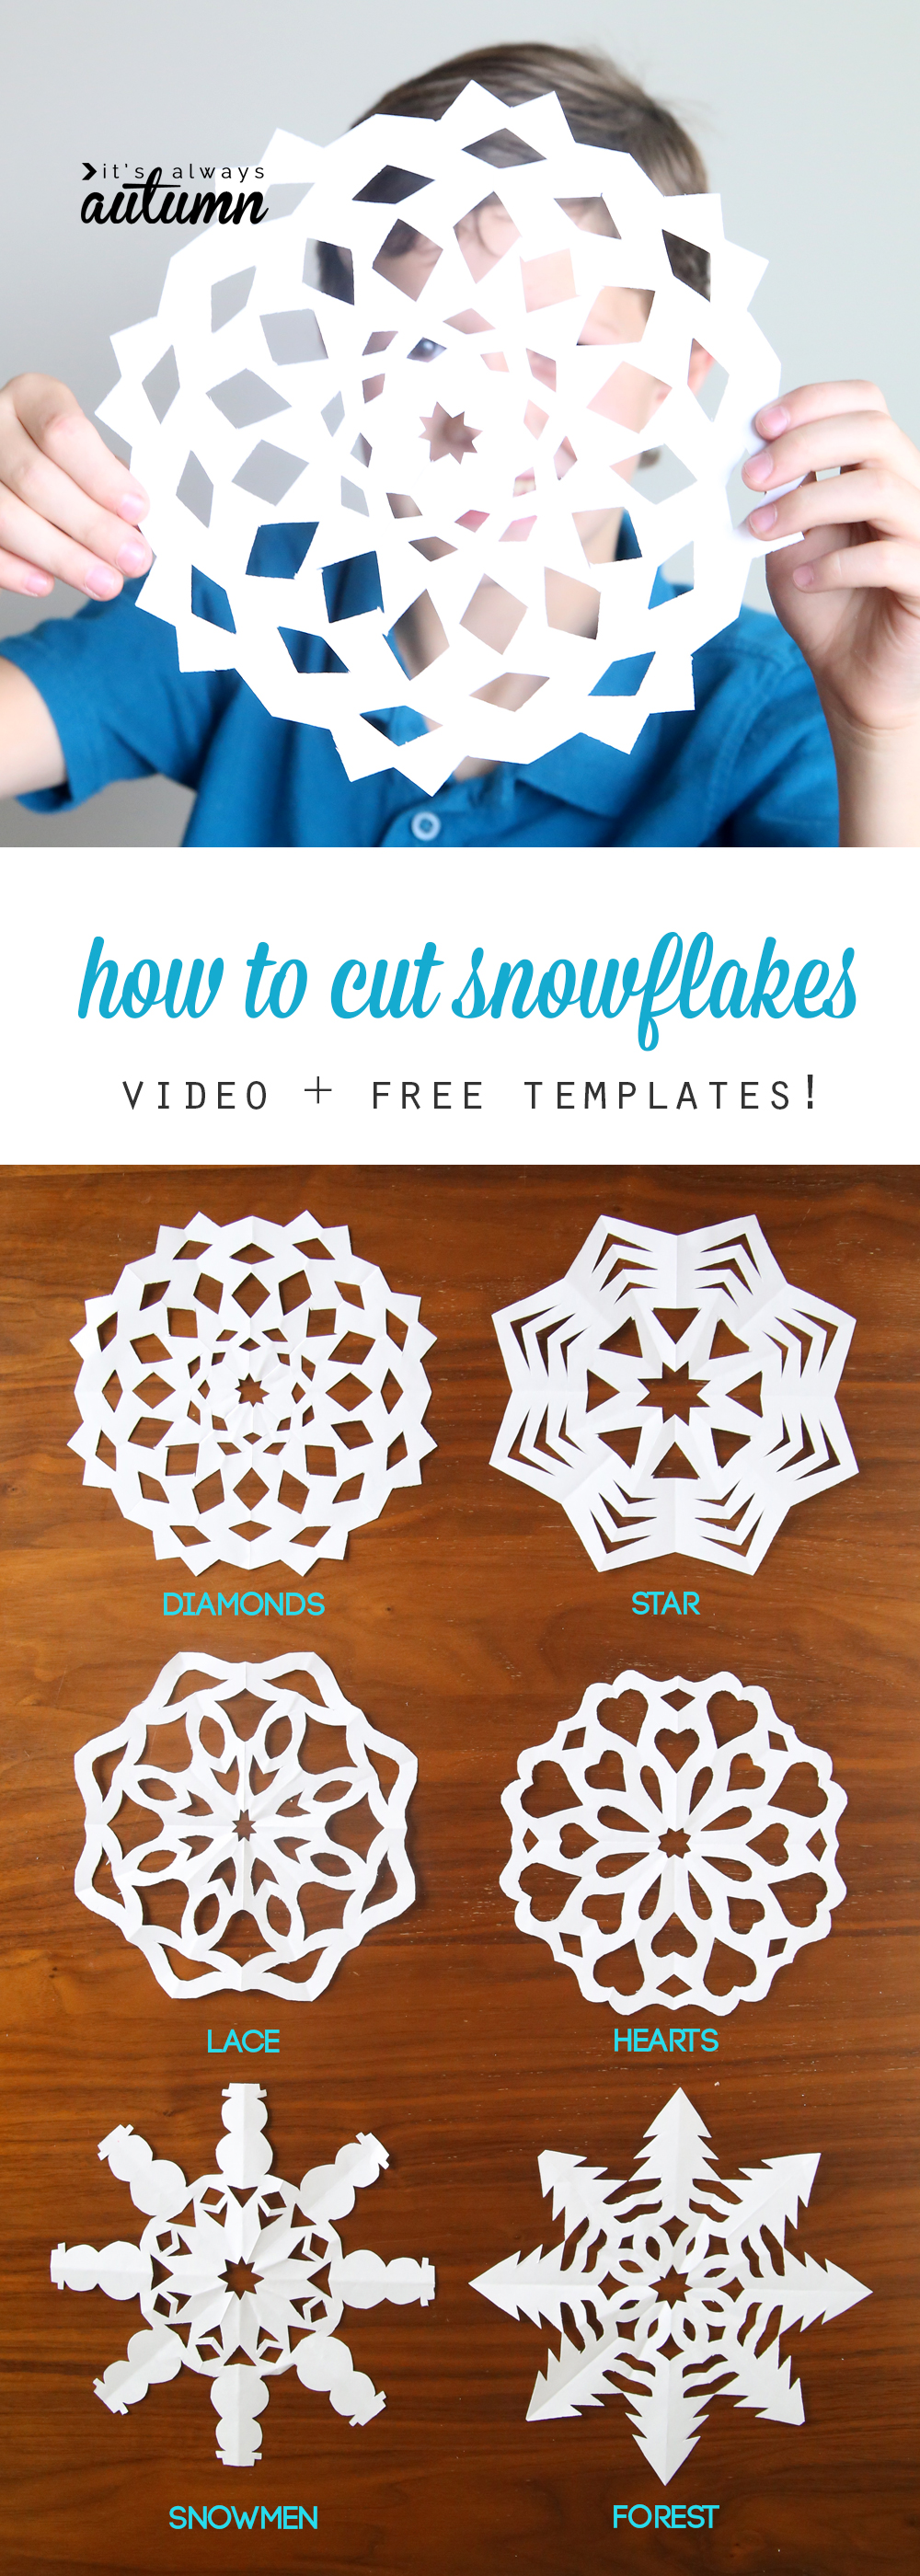 How to cut snowflakes video tutorial free templates for How to make winter crafts